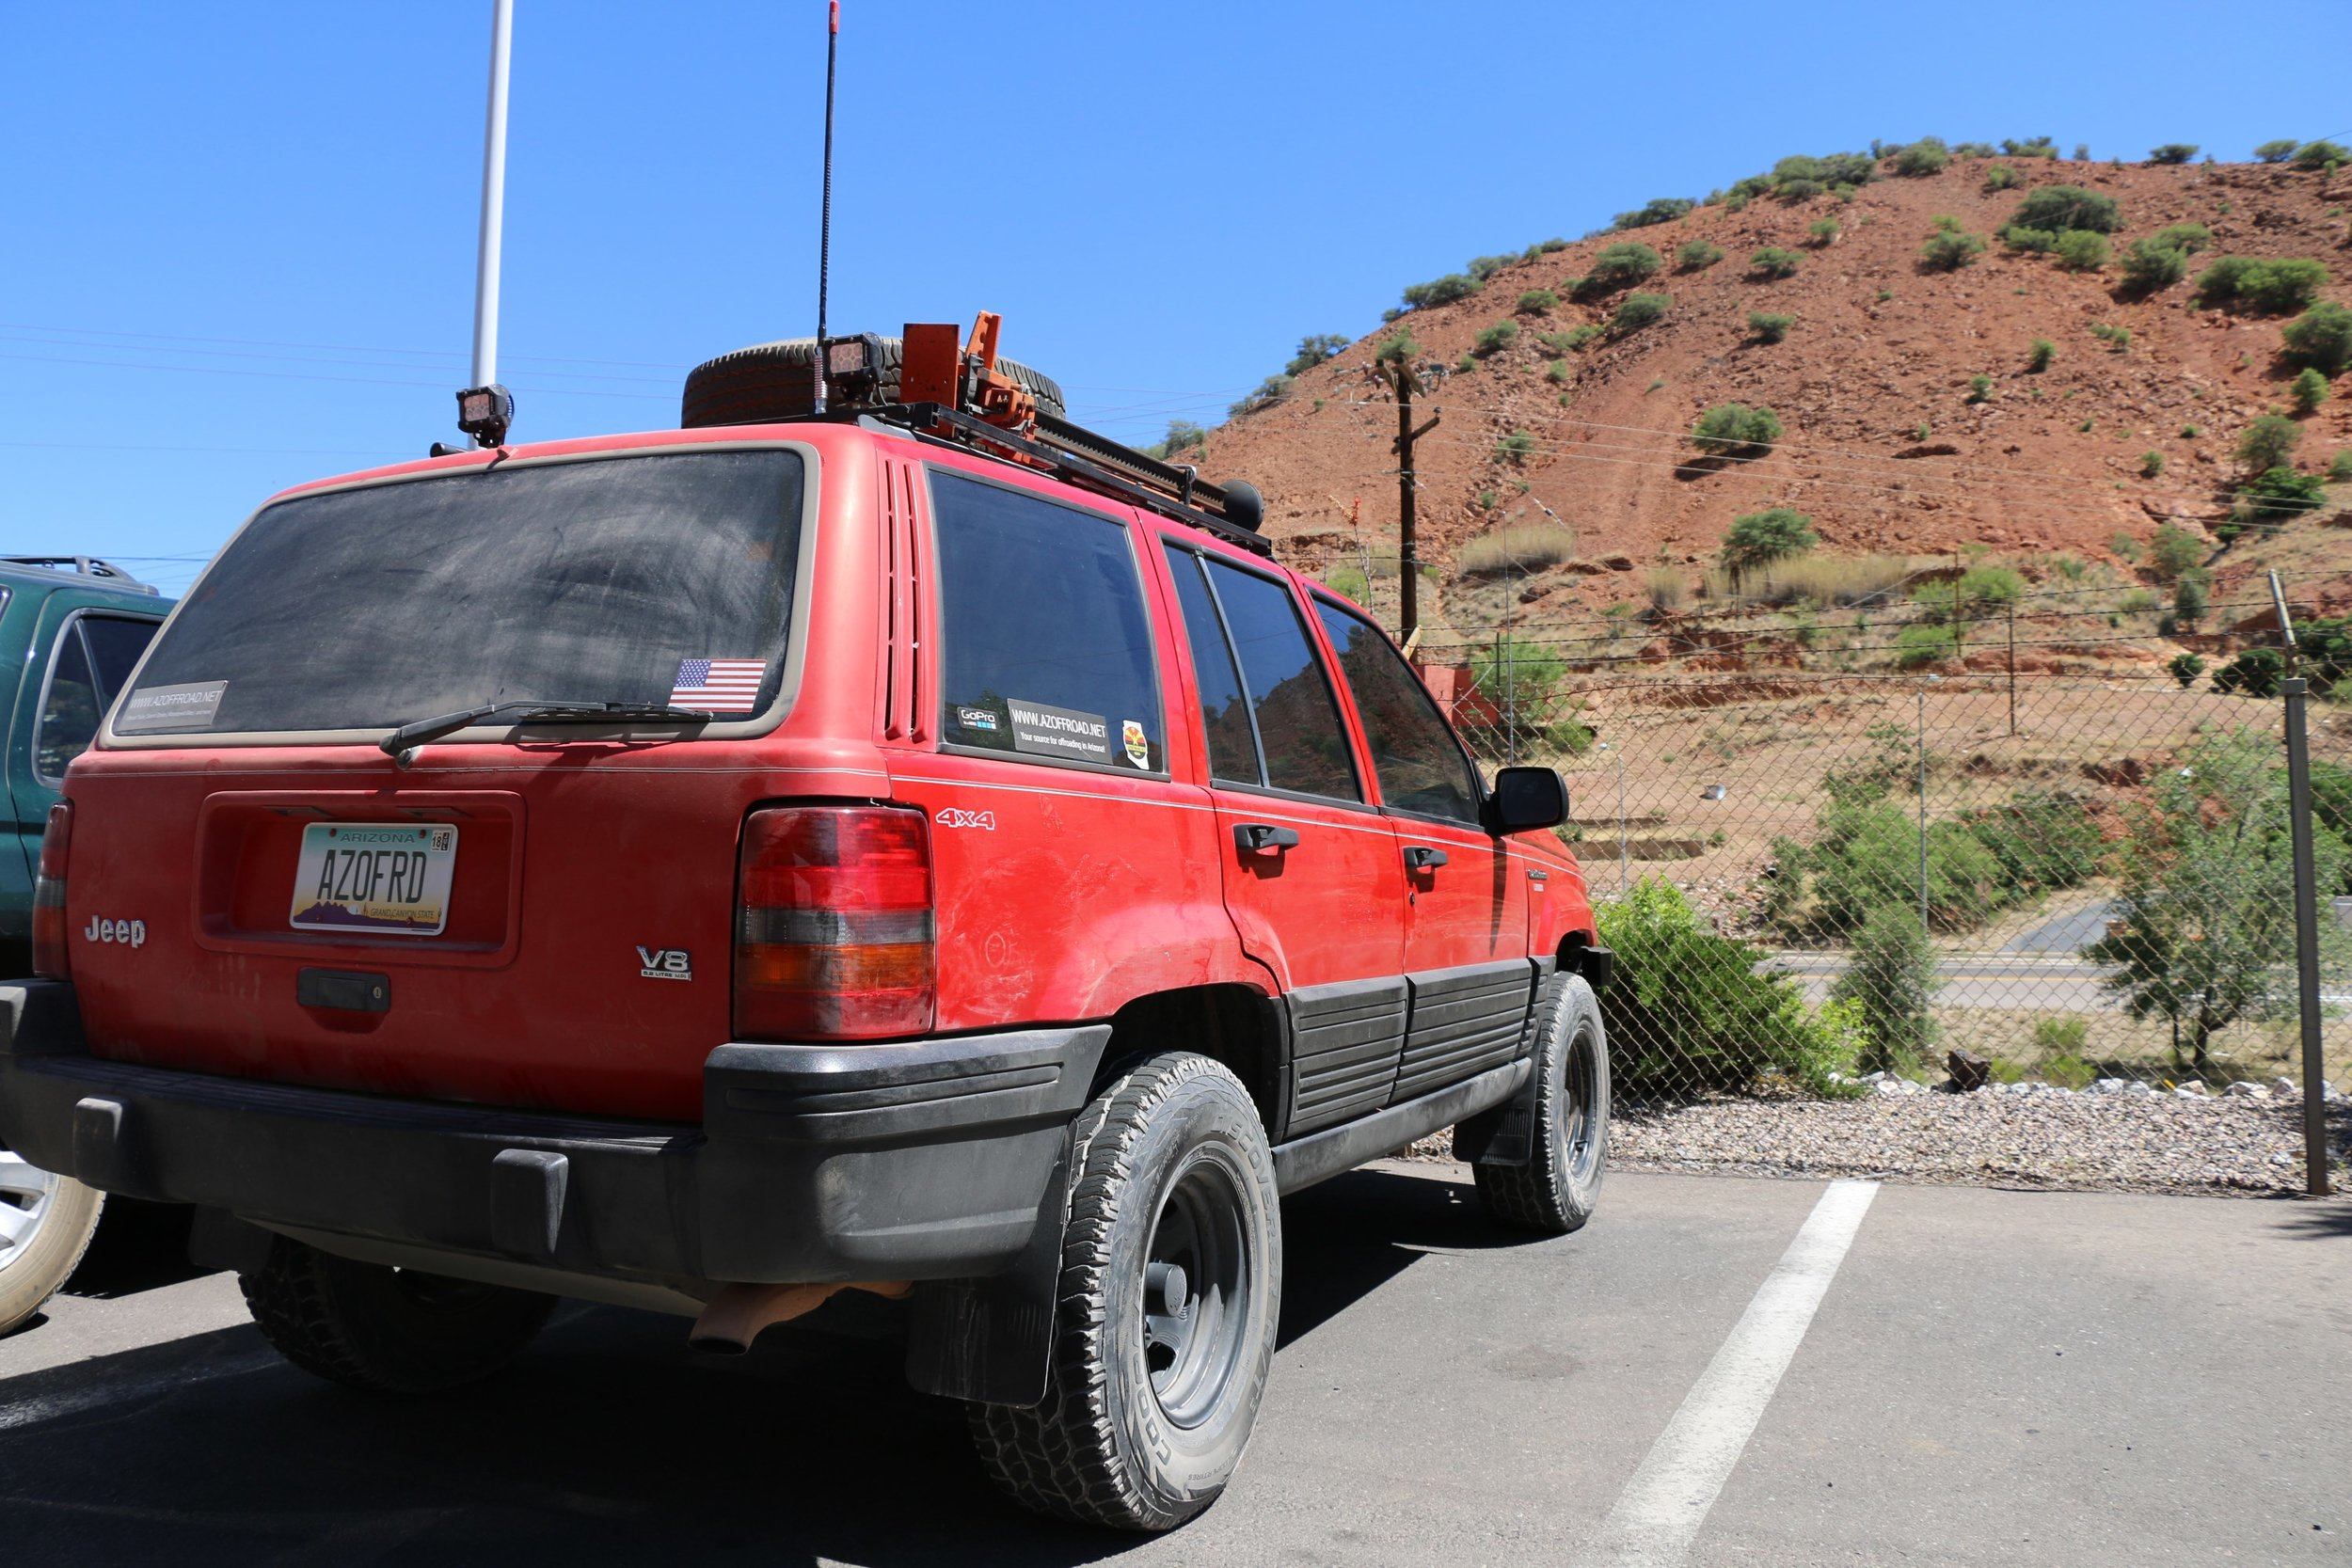 Parked in Bisbee before heading back on the highway.